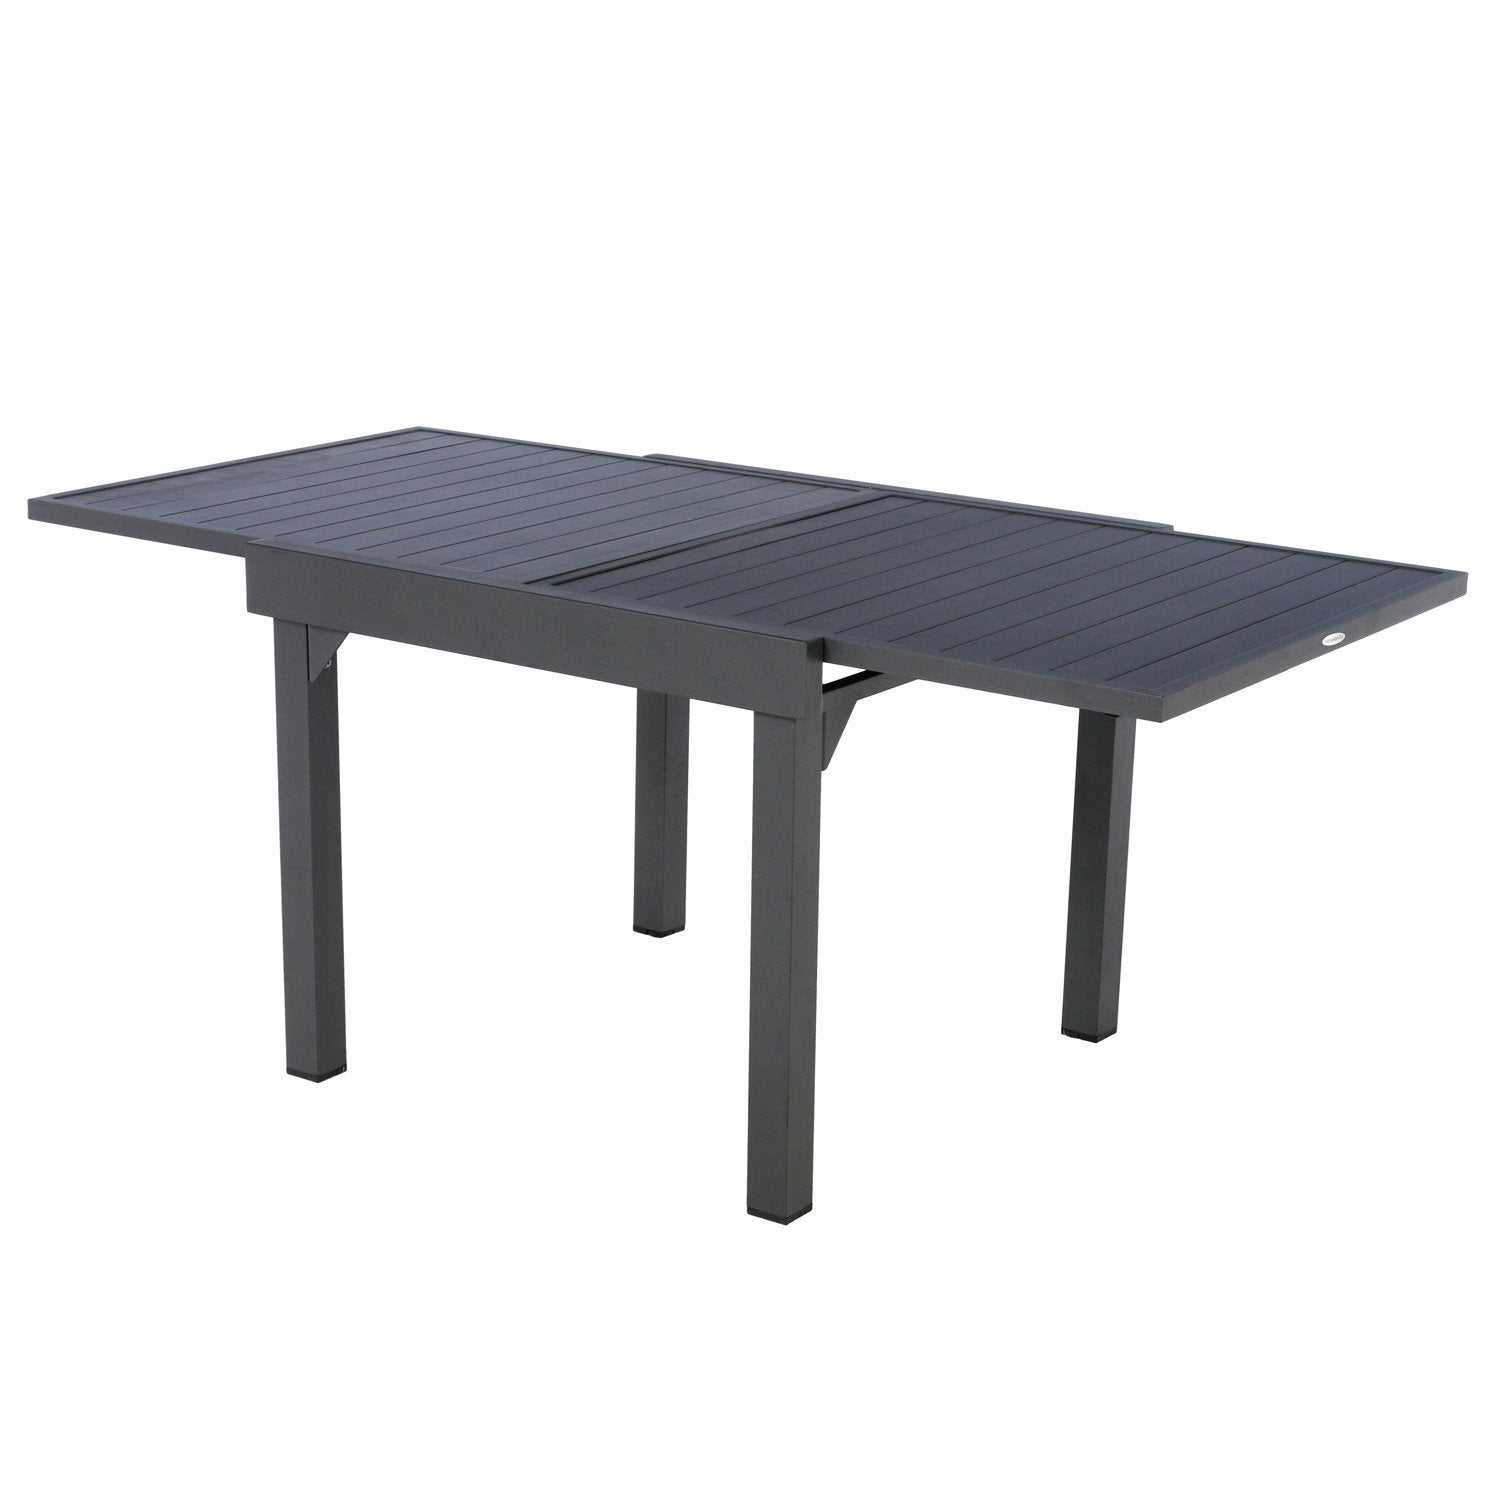 table de jardin hesperide piazza rectangulaire gris 8. Black Bedroom Furniture Sets. Home Design Ideas